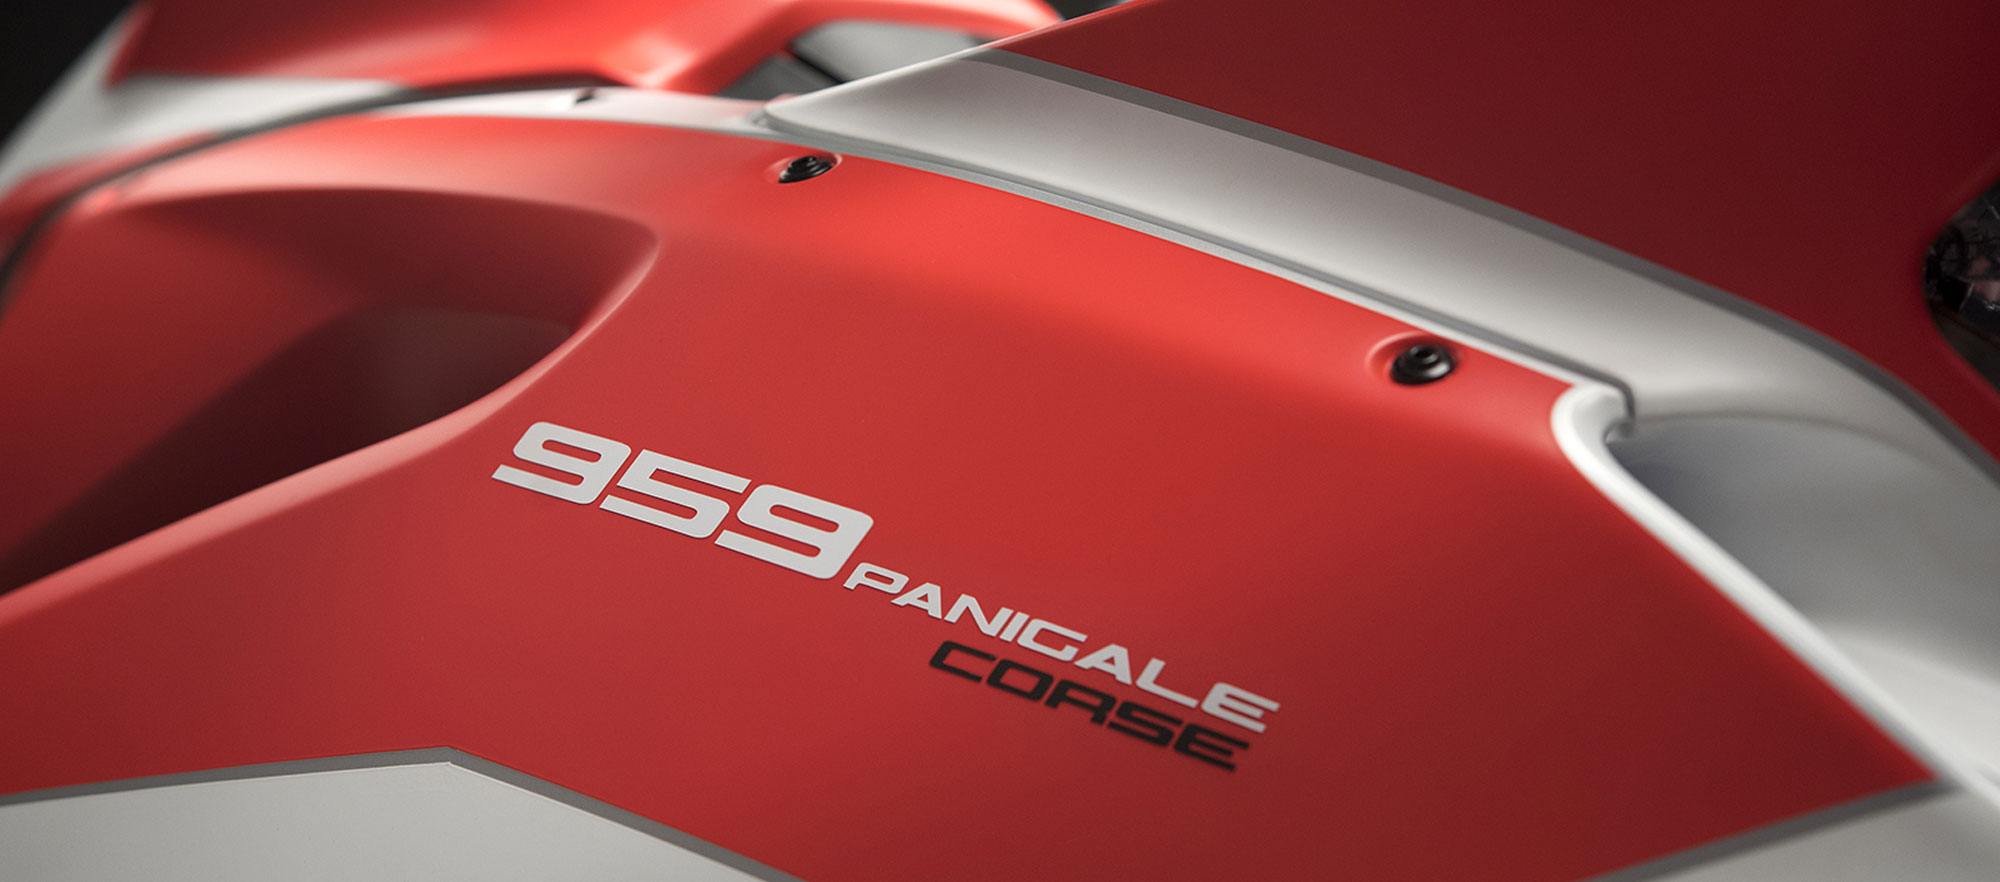 959 PANIGALE / 959 PANIGALE CORSE